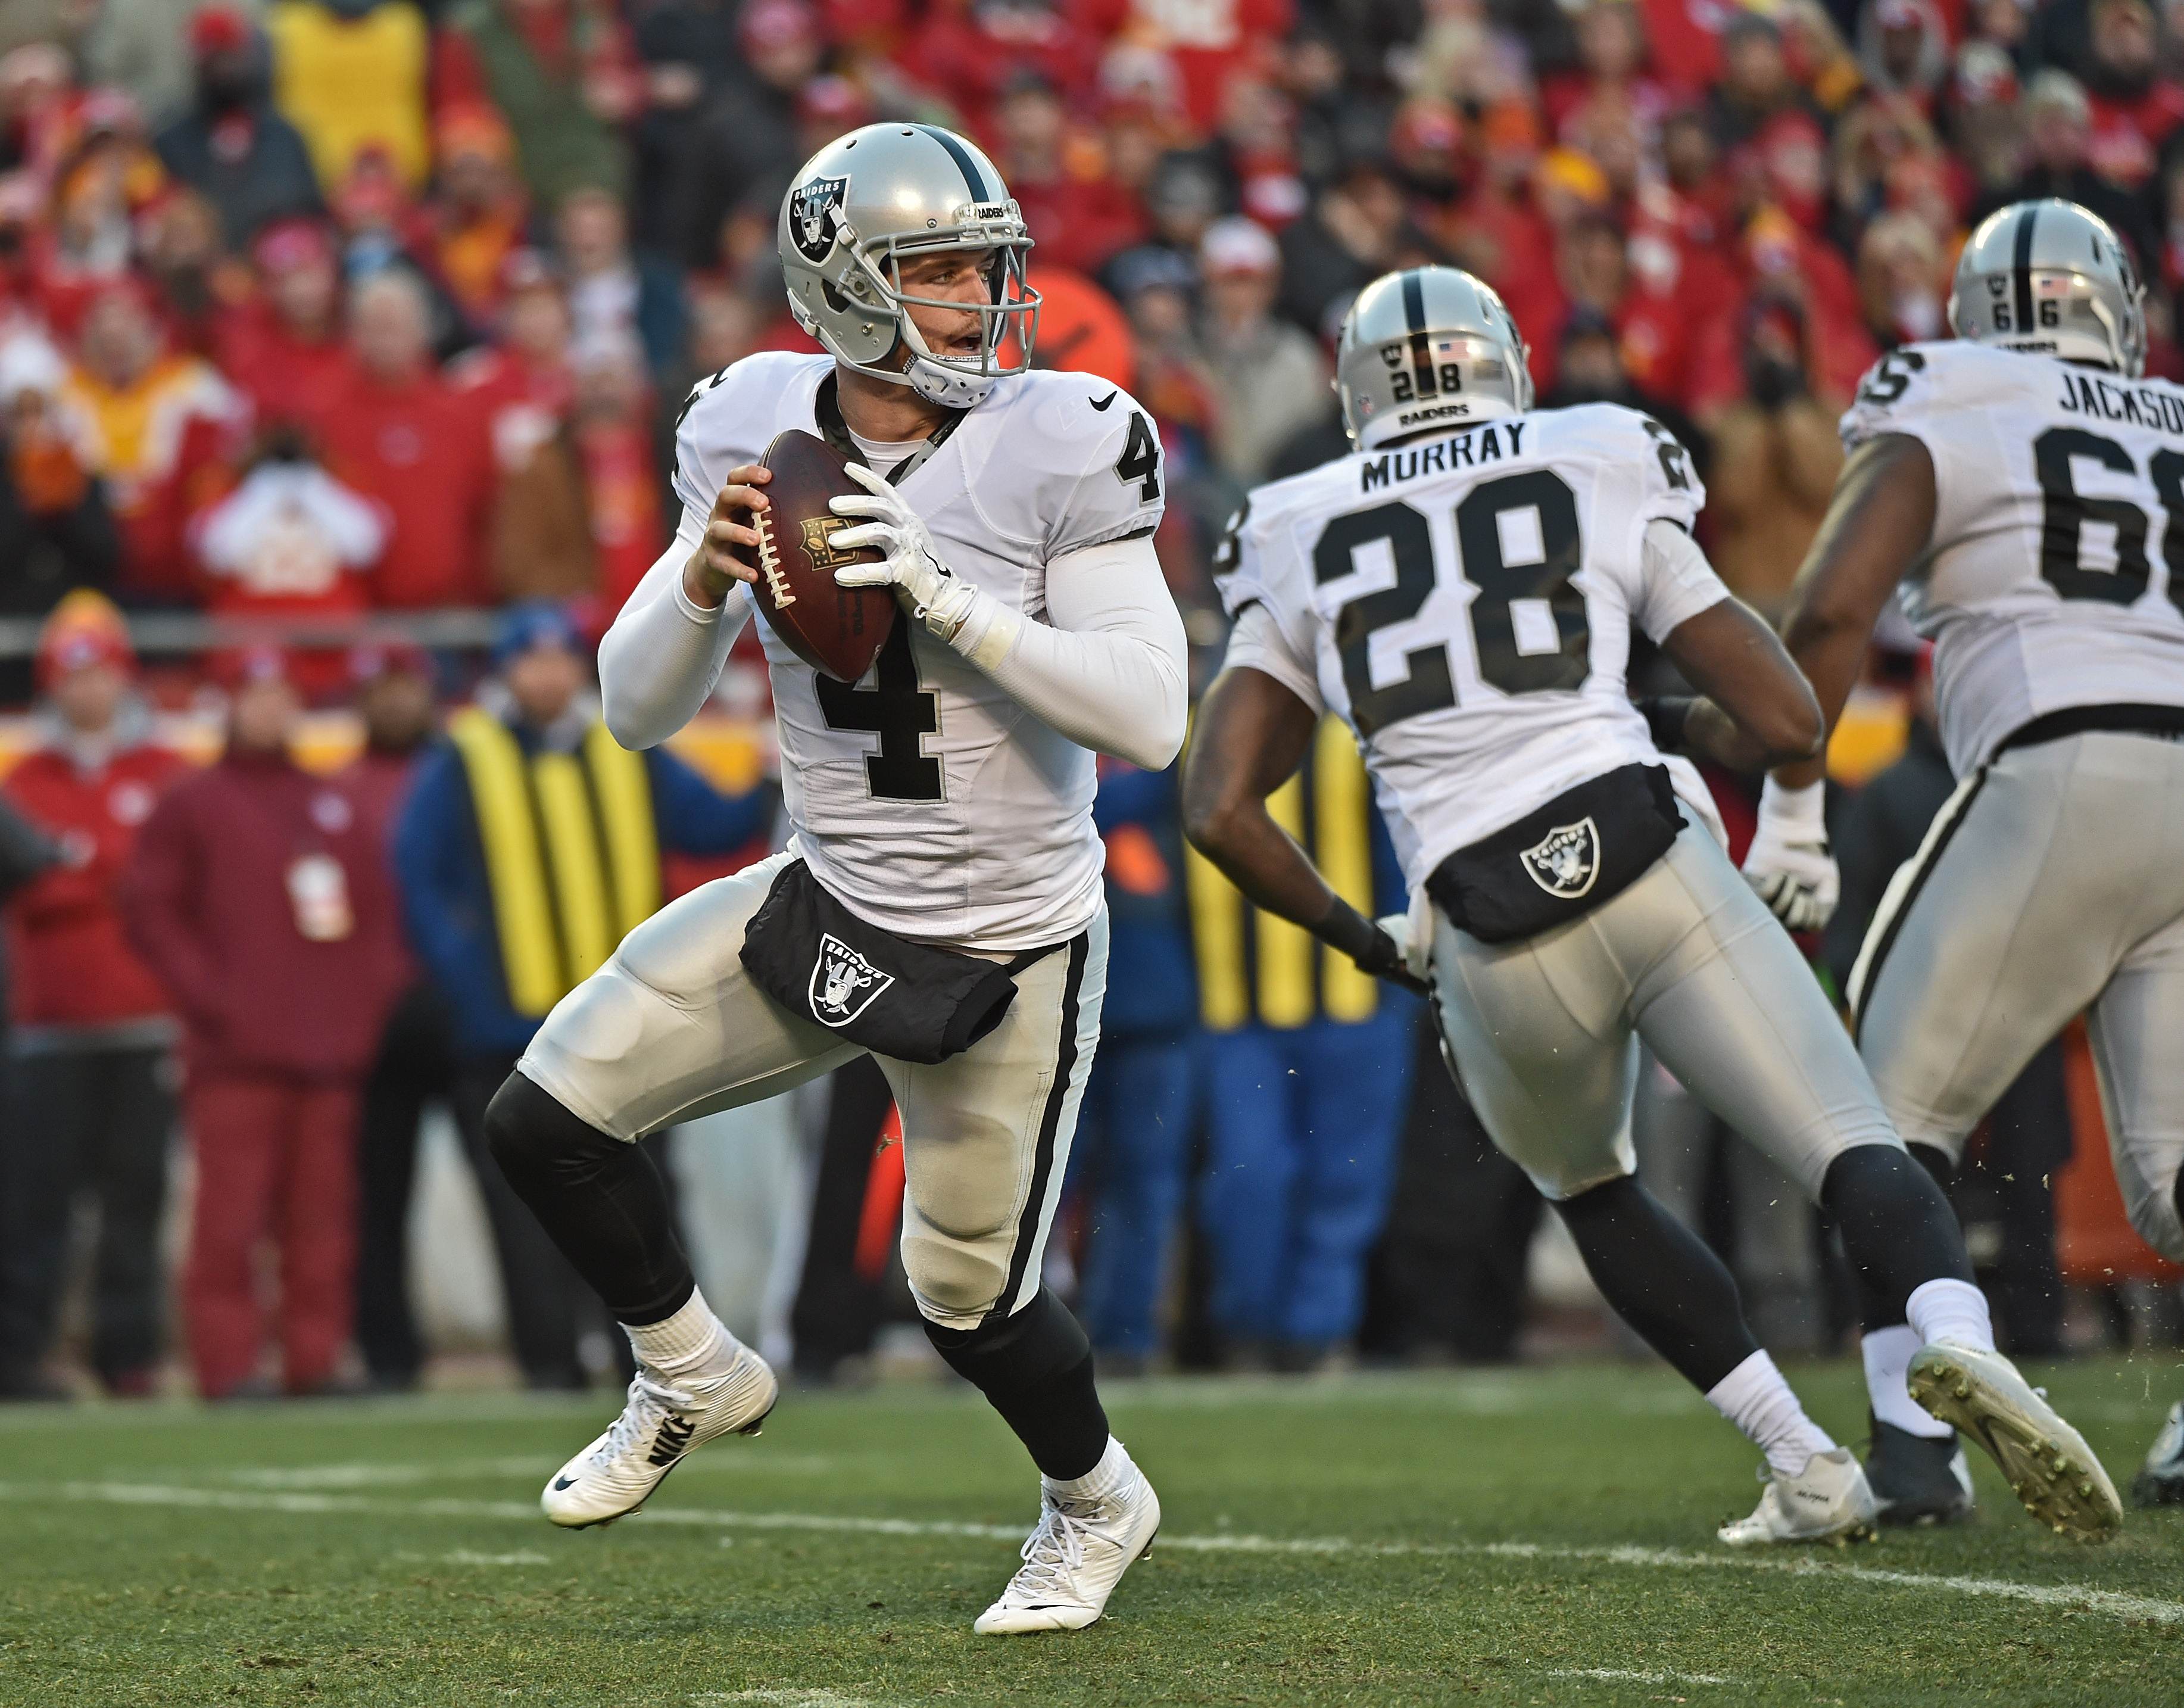 Quarterback Derek Carr of the Oakland Raiders during a game against the Kansas City Chiefs